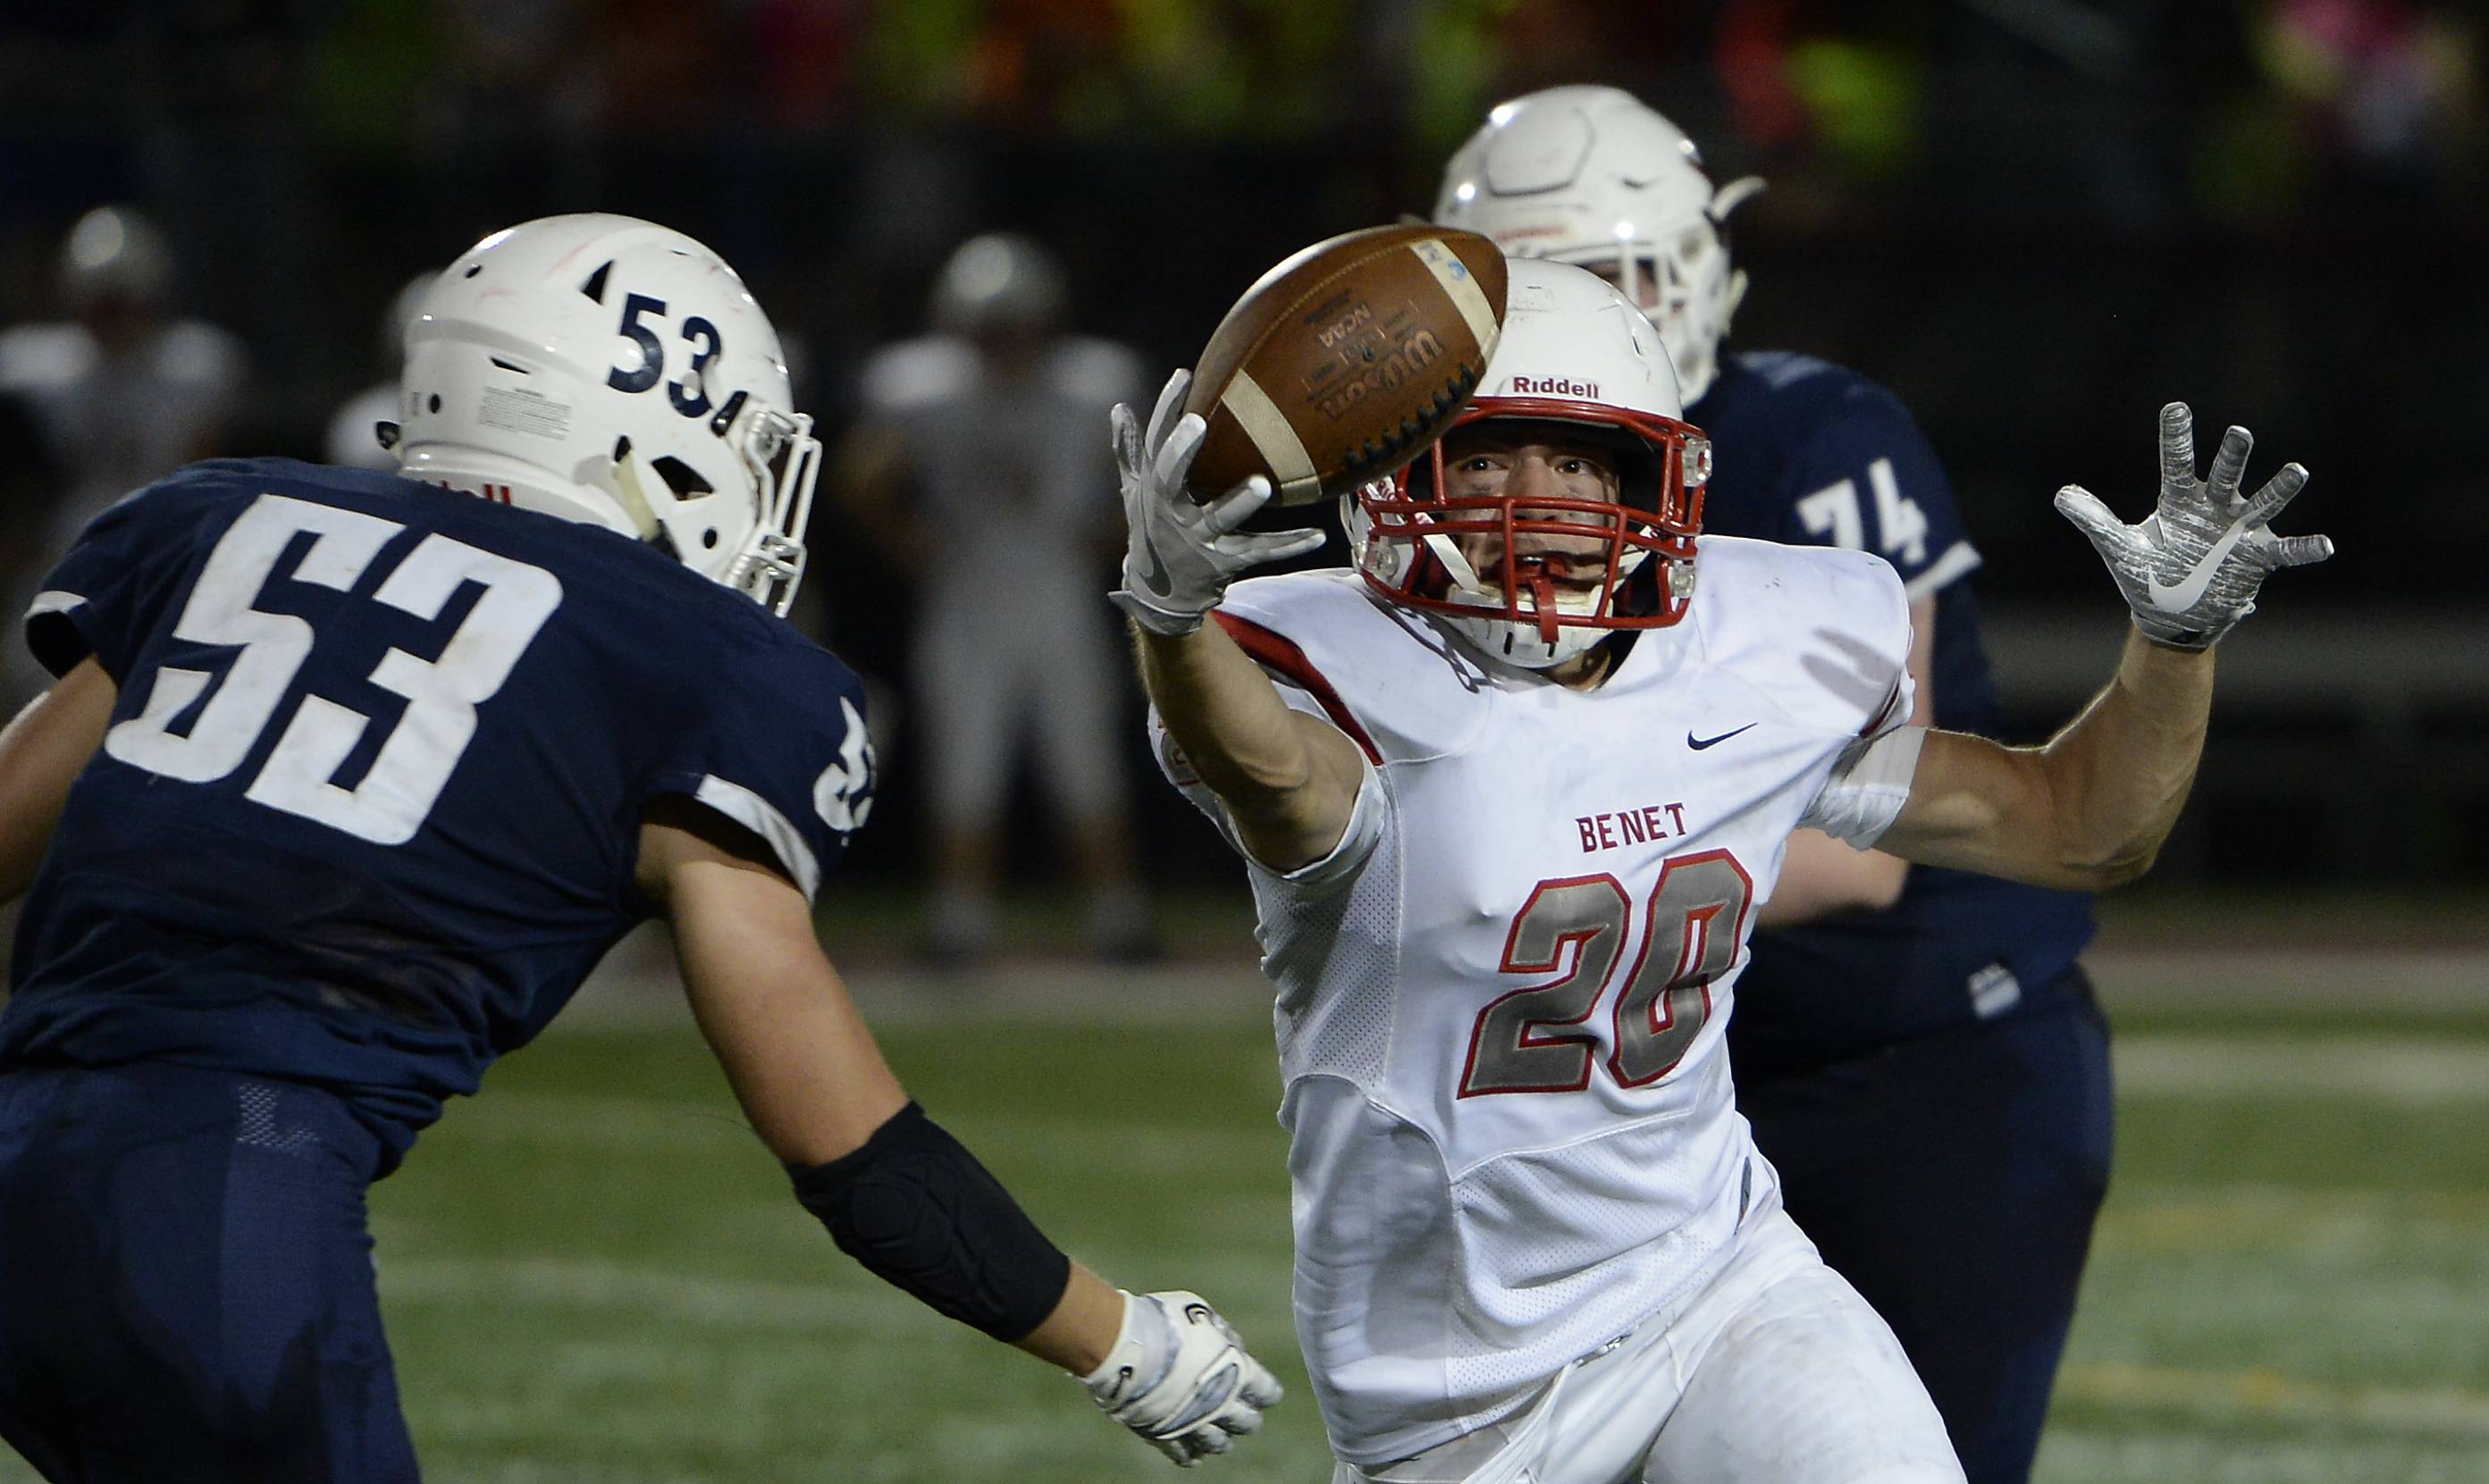 St. Viator's Jake Wolf breaks up a pass play as Benet Academy's Bennett Hickey fails to haul it in during the first half Friday in Arlington Heights.